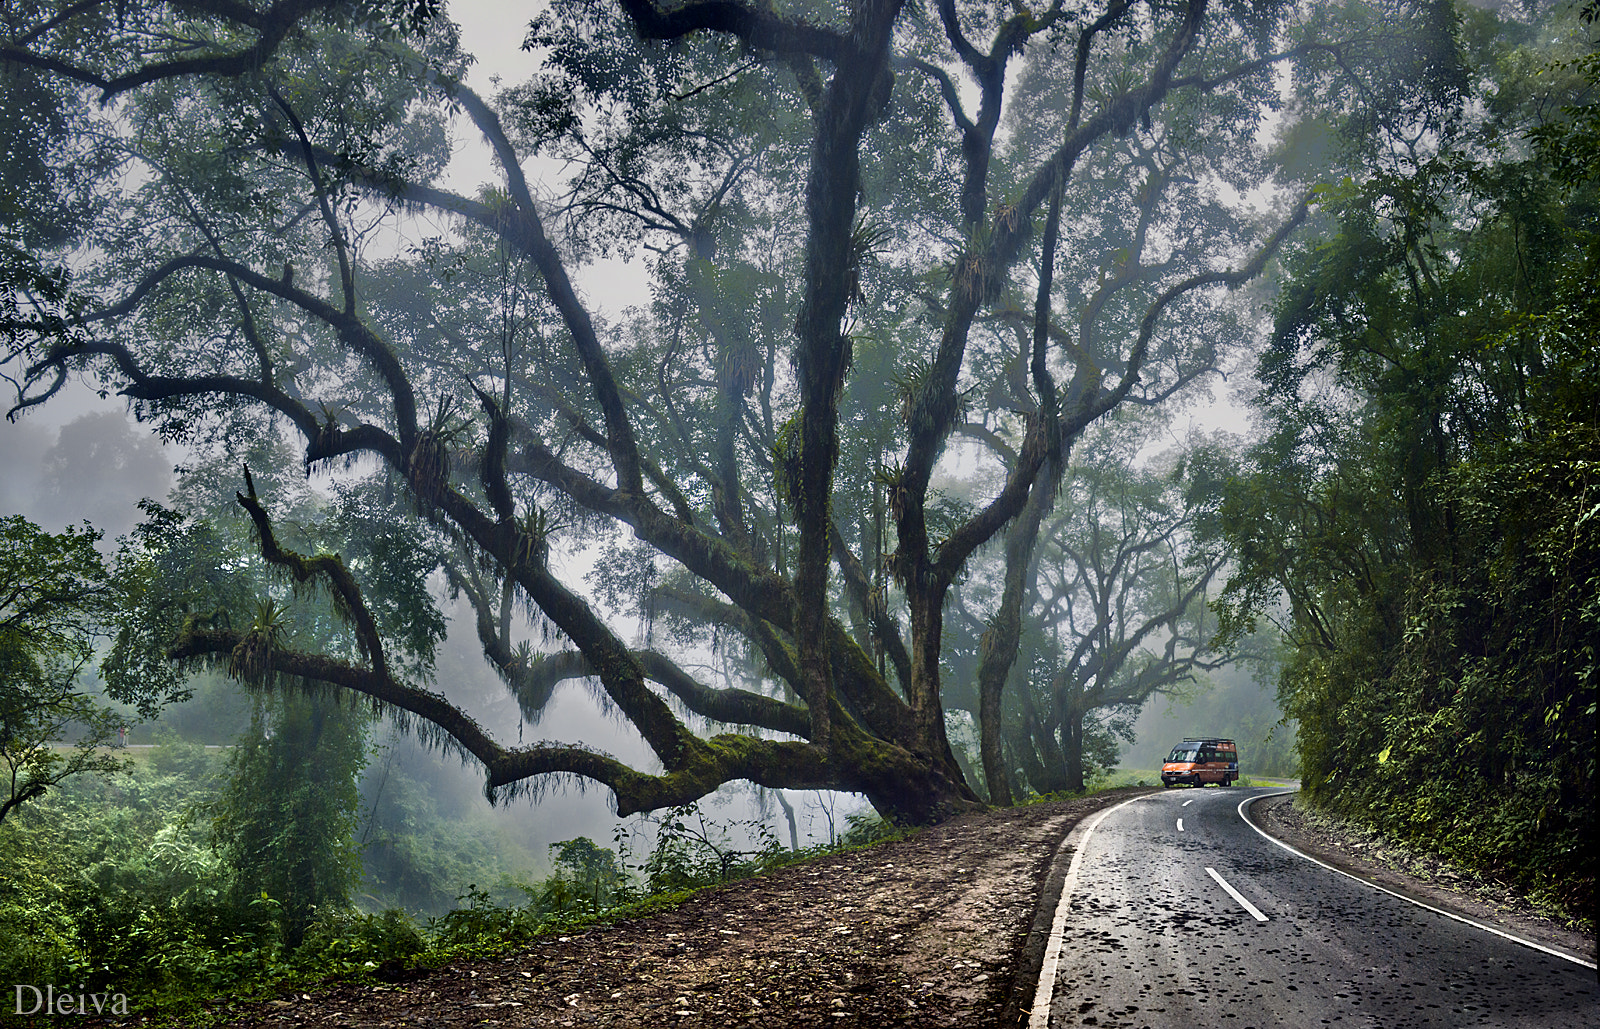 Photograph Cloud Forest (Calilegua National Park, Jujuy, Argentina) by Domingo Leiva on 500px